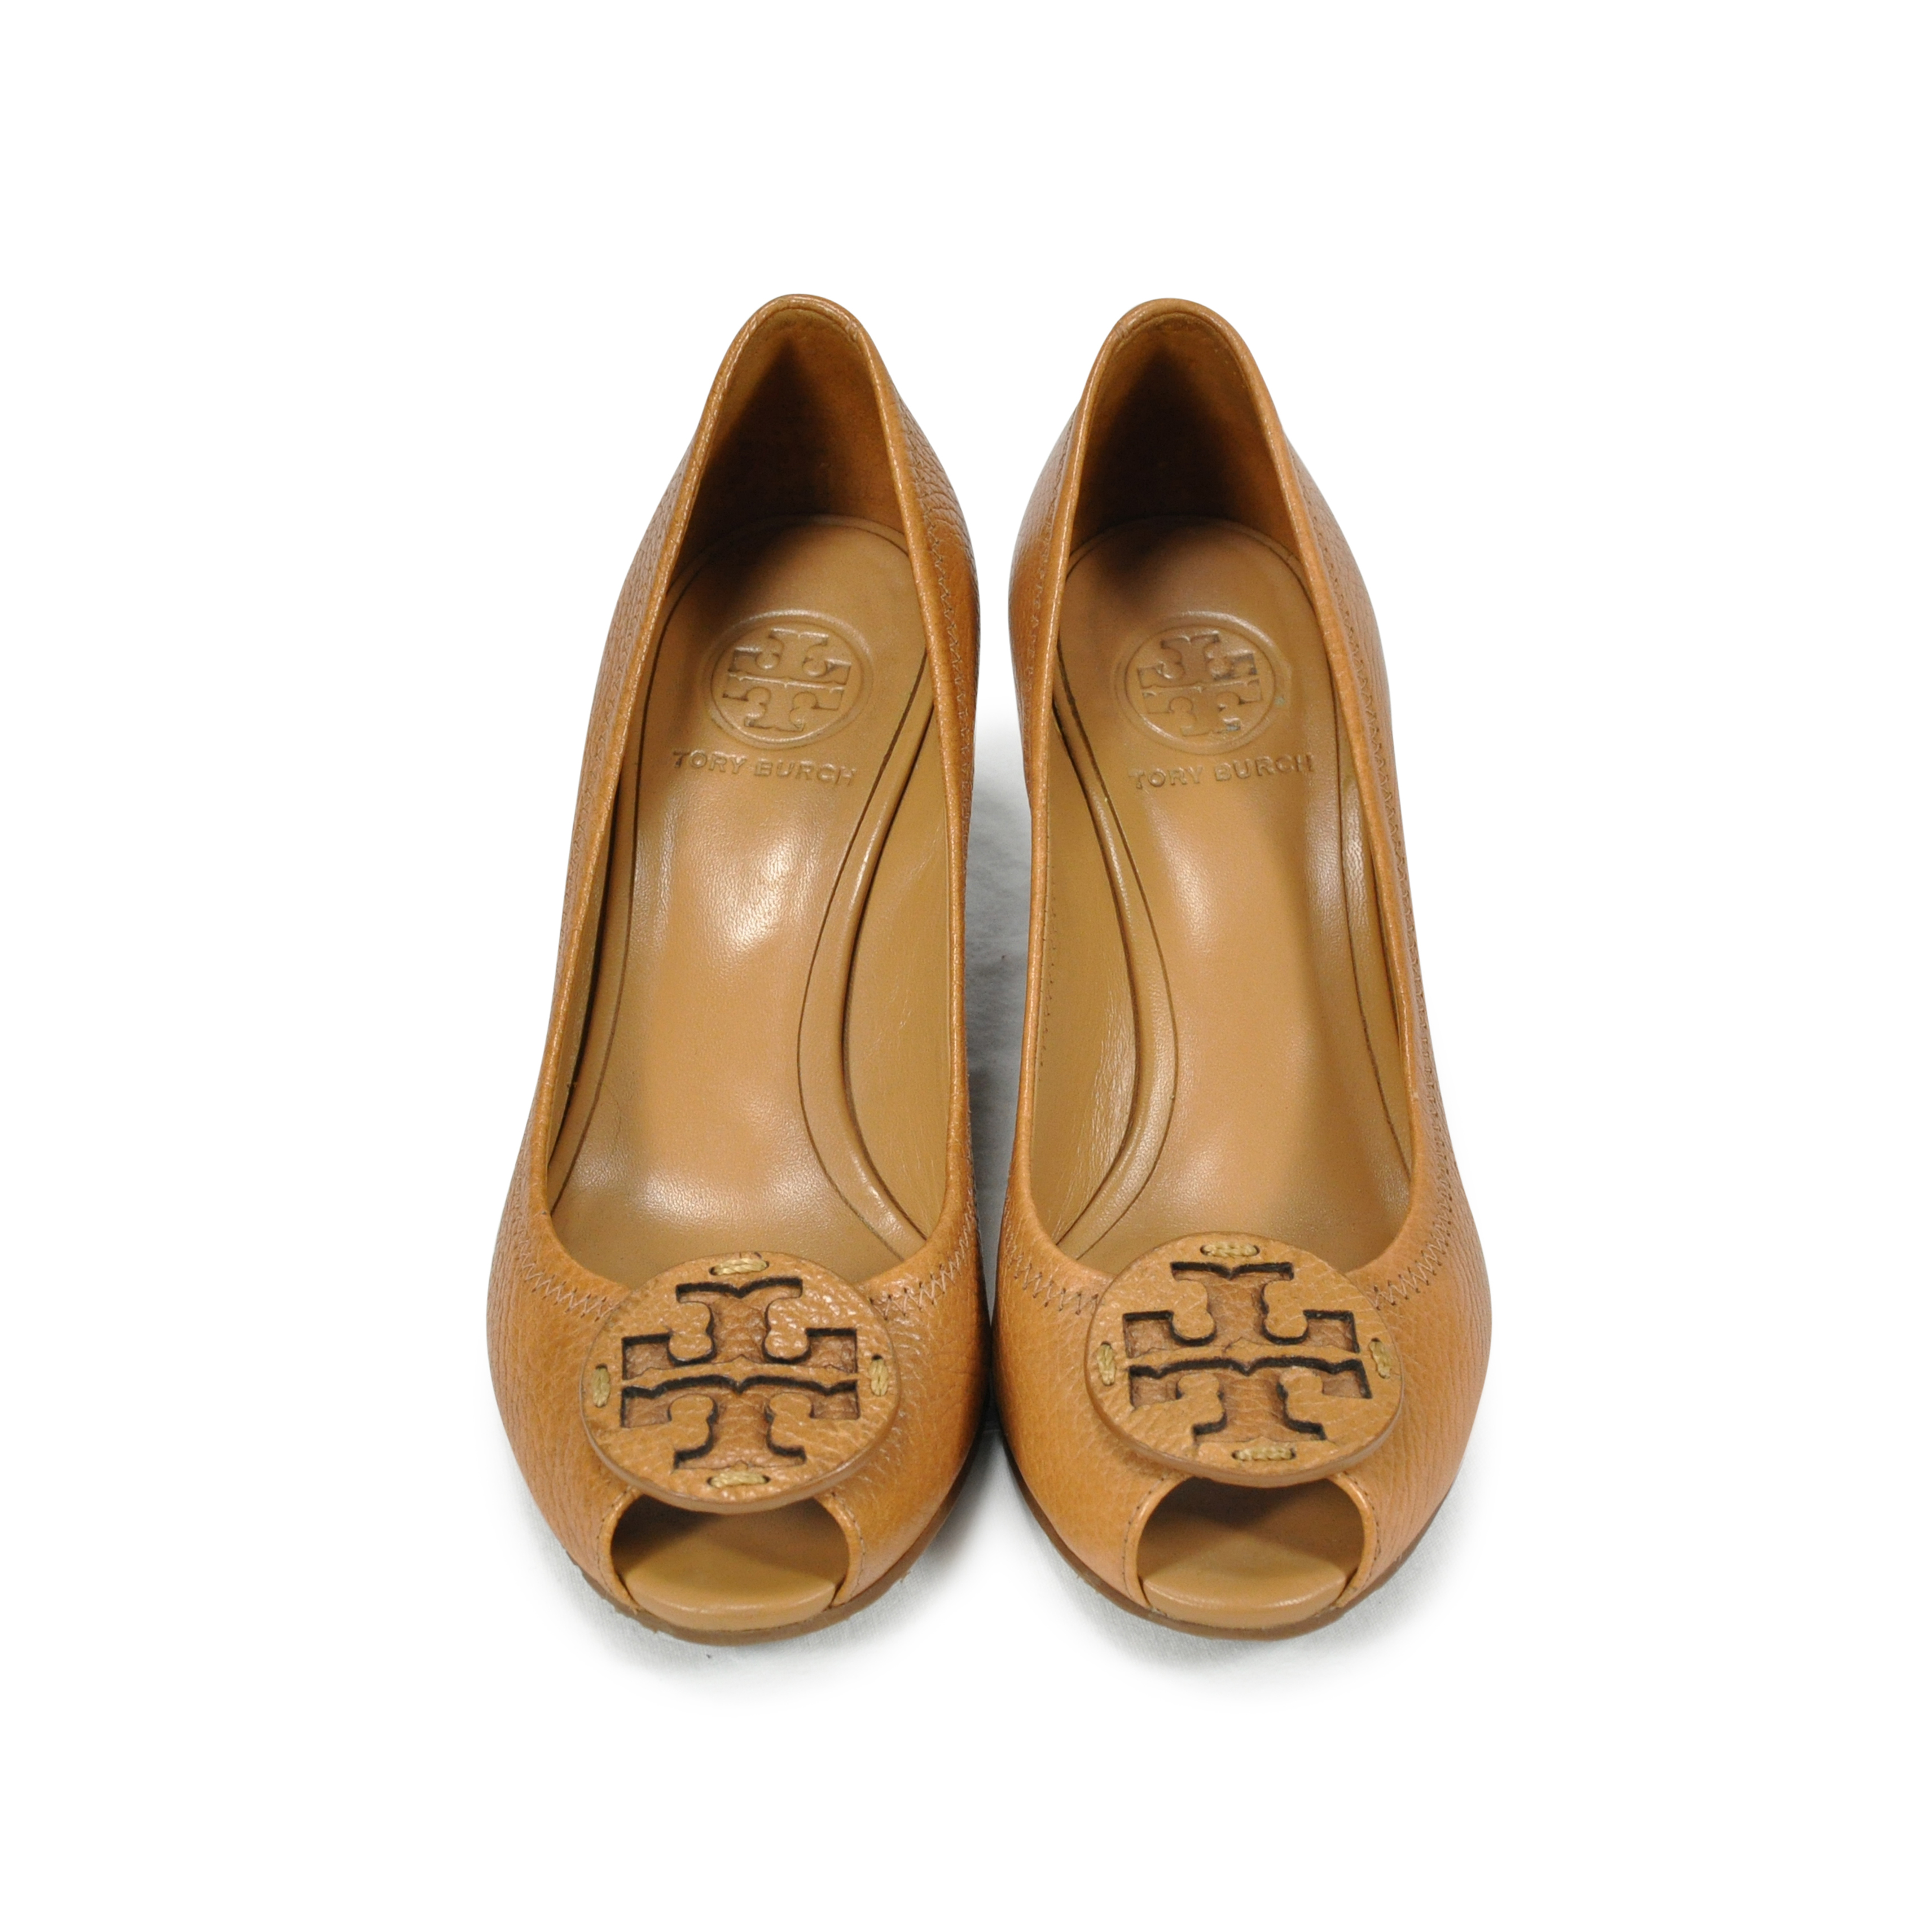 6e91afdf3 Authentic Second Hand Tory Burch Sally Peep Toe Wedges (PSS-243-00003)